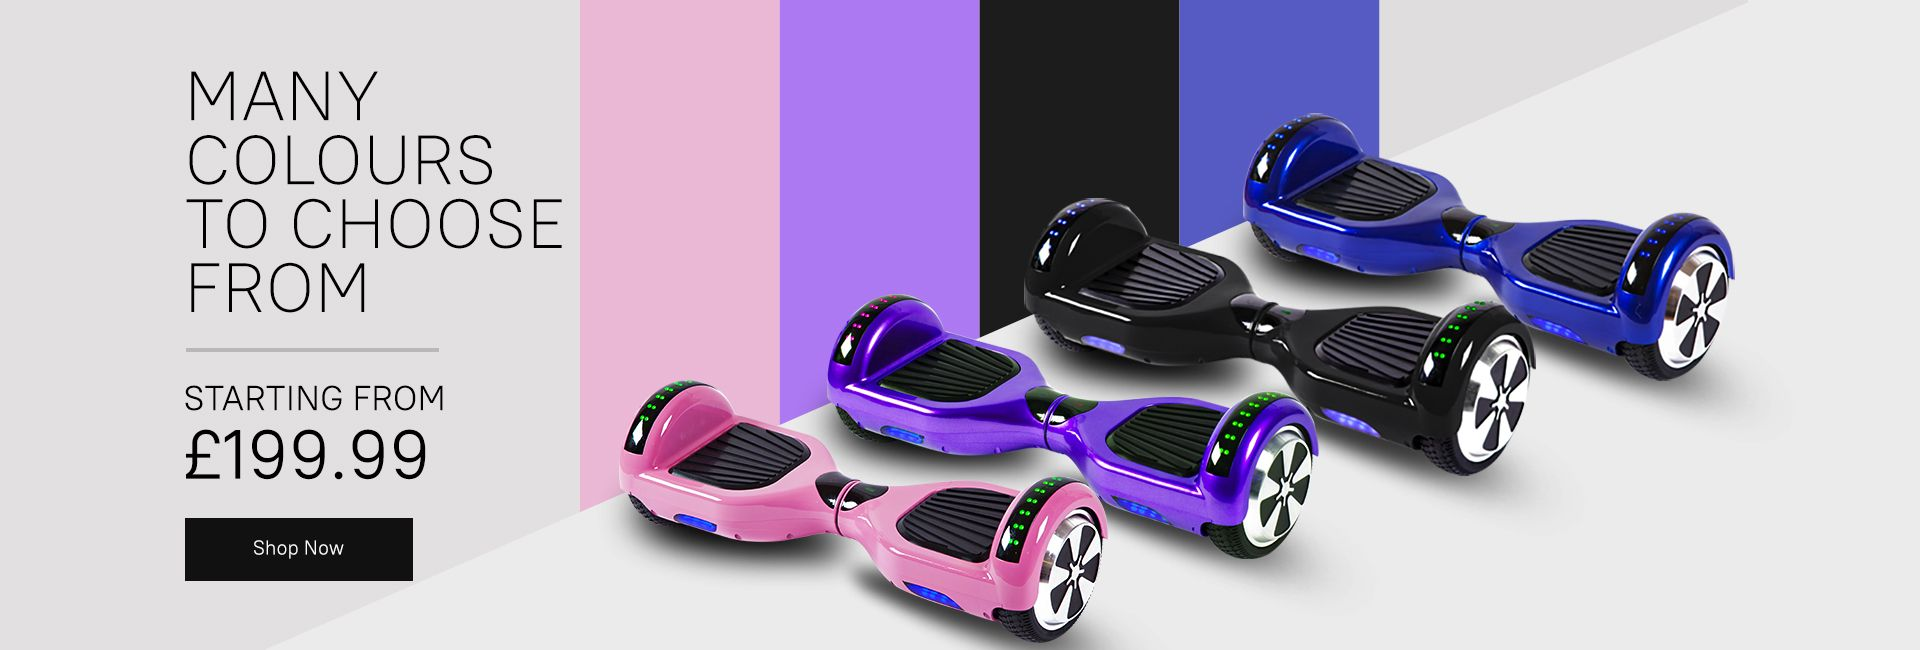 vanguard-hoverboard-sale